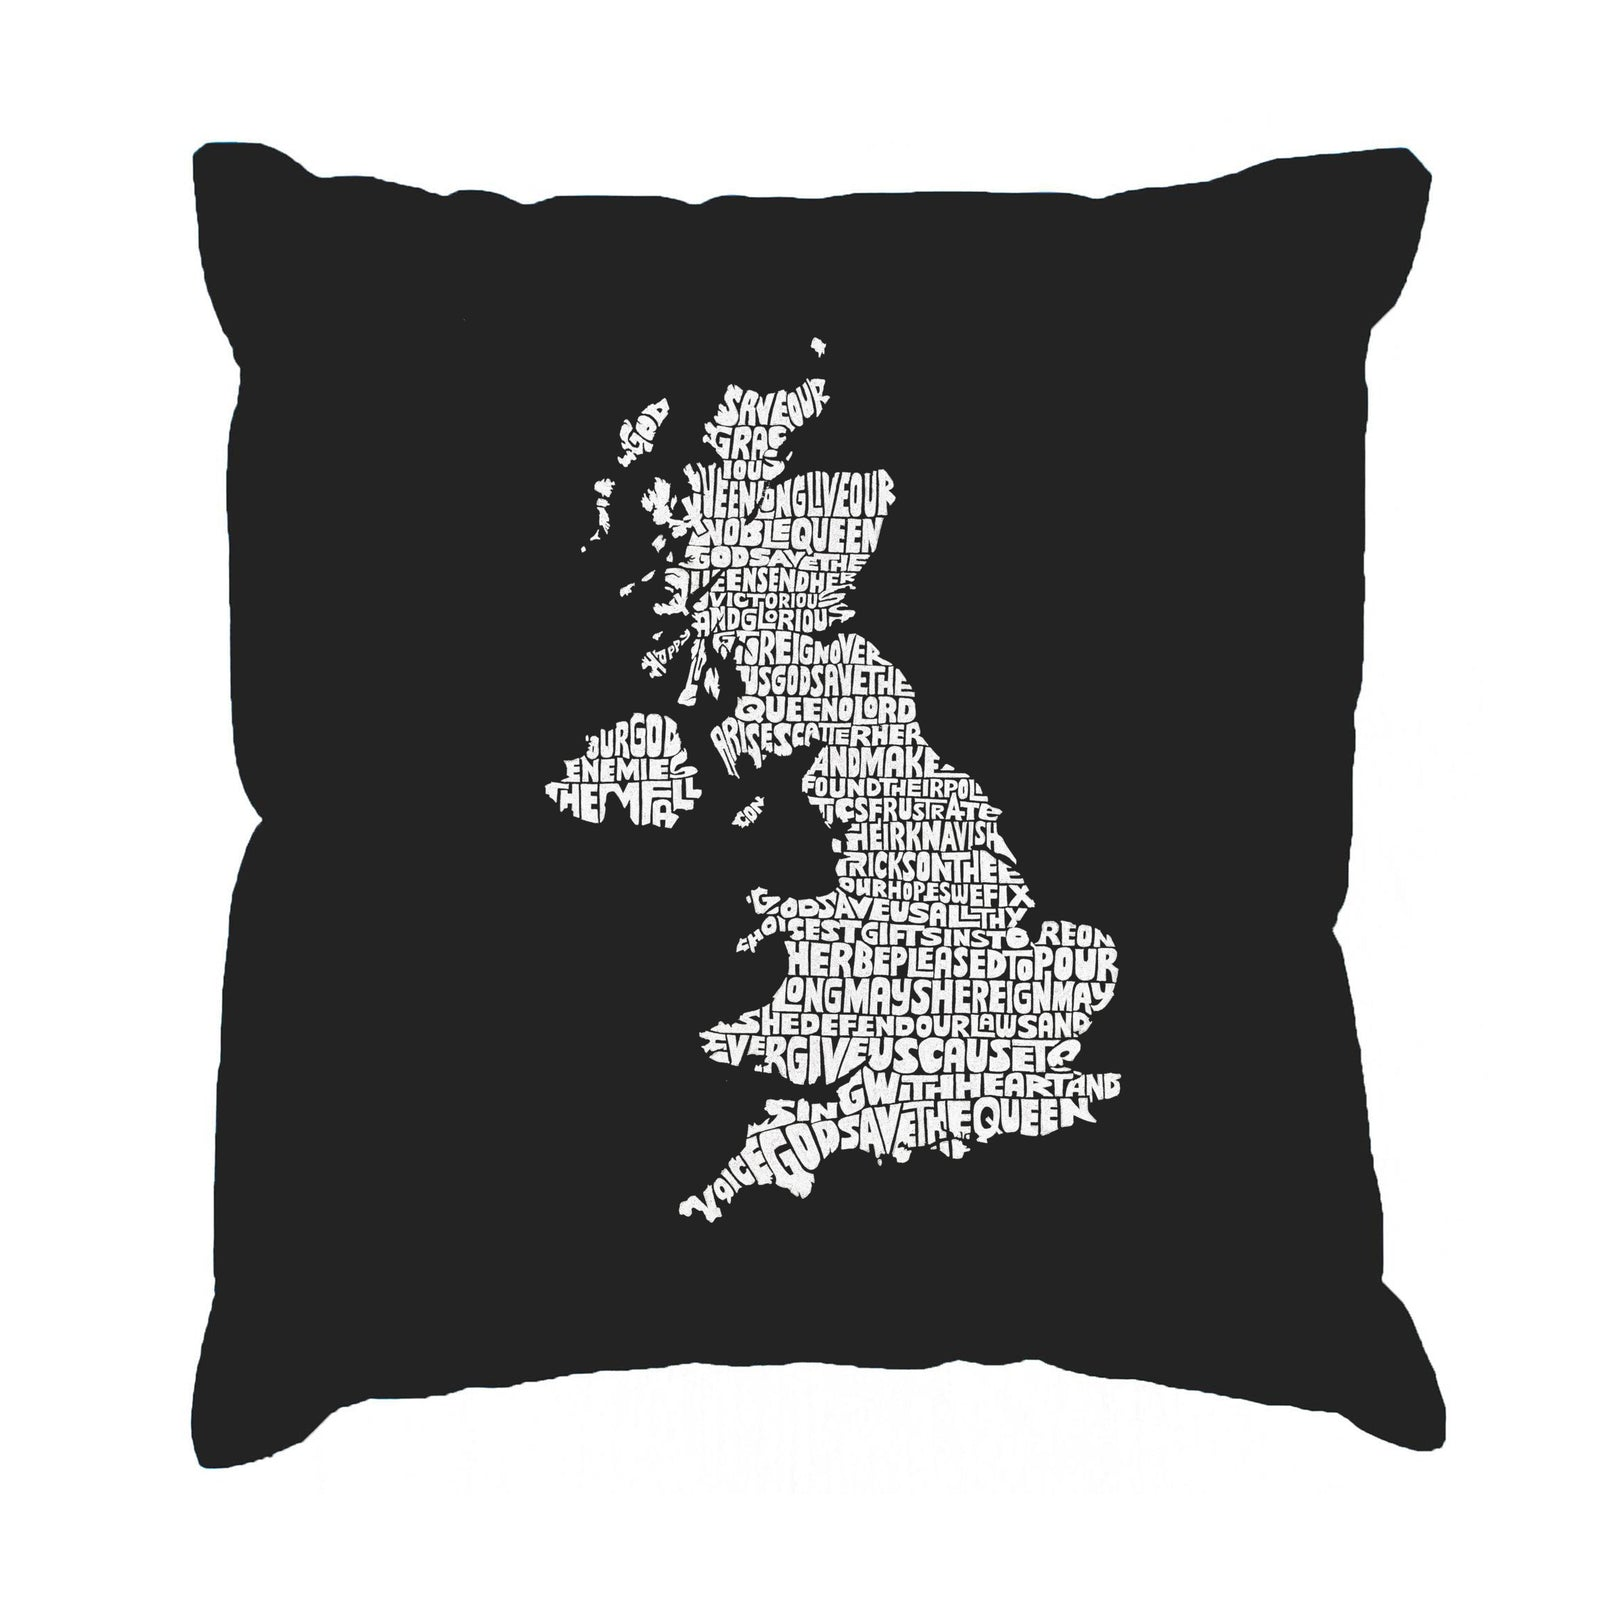 Throw Pillow Cover - GOD SAVE THE QUEEN